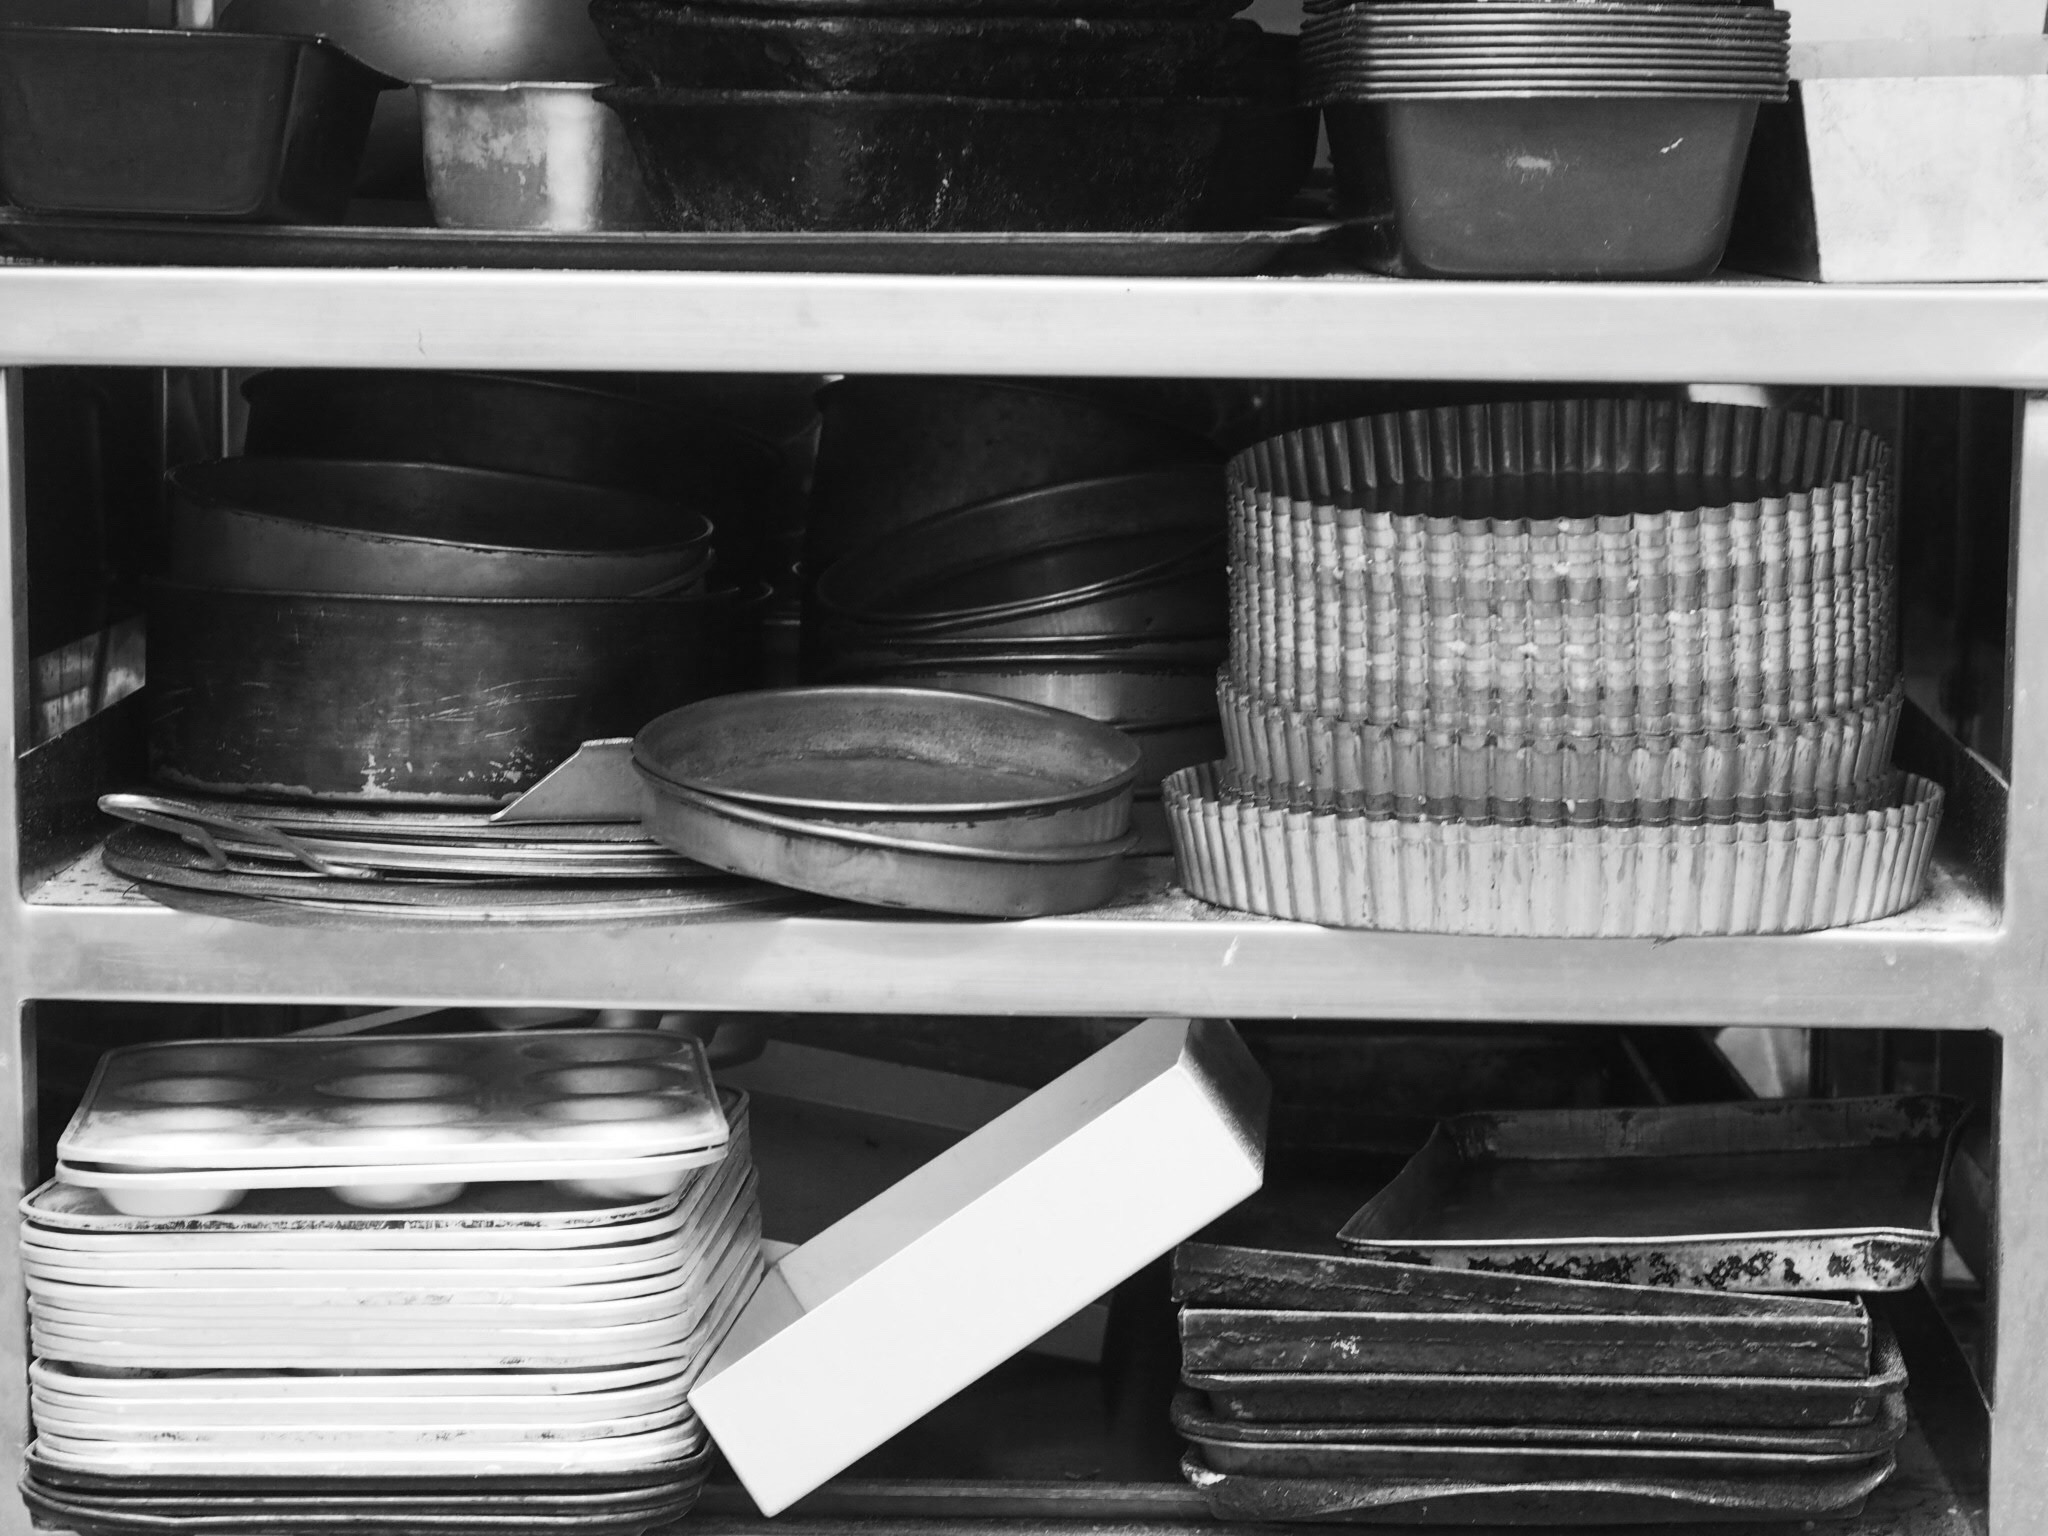 Baking tin selection to rival mine